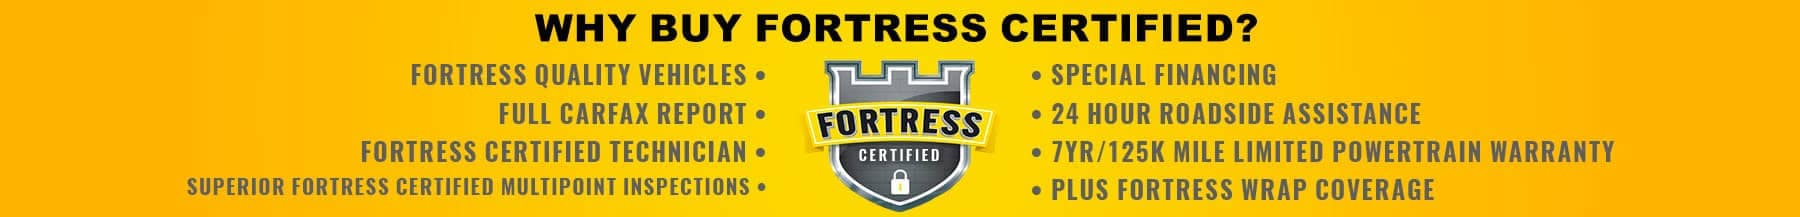 fortress certified banner